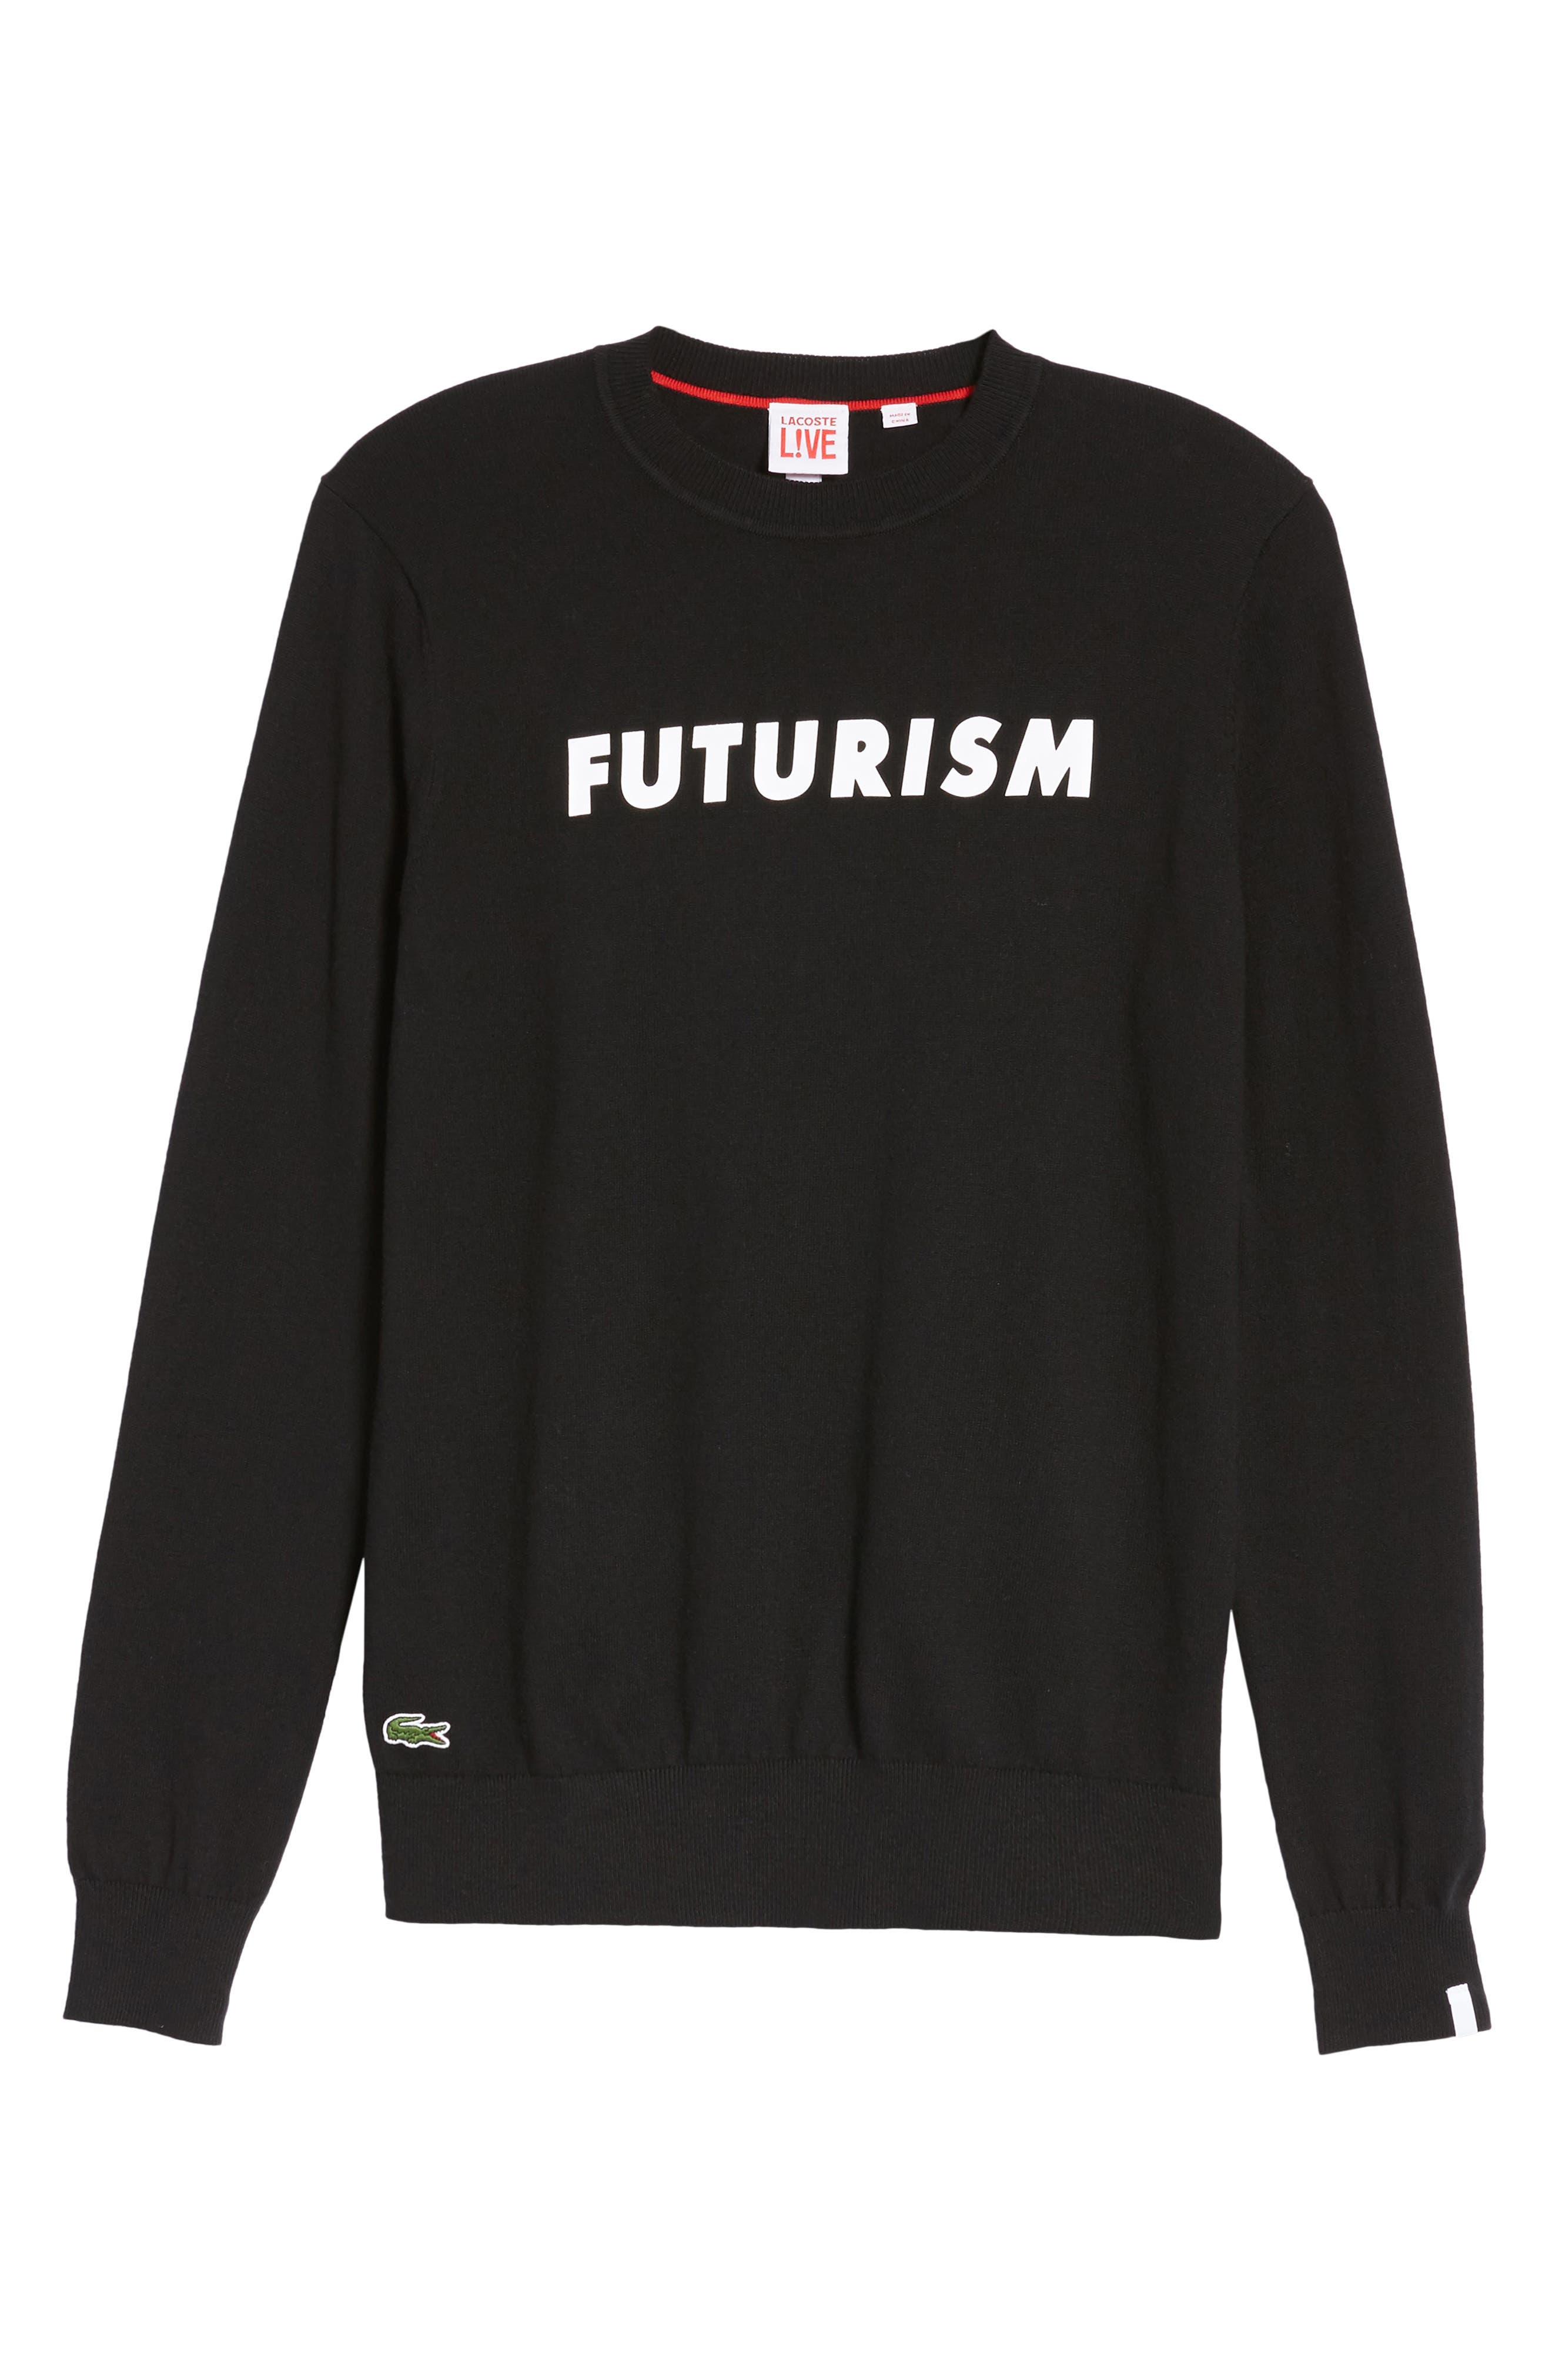 Futurism Graphic Sweater,                             Alternate thumbnail 6, color,                             001